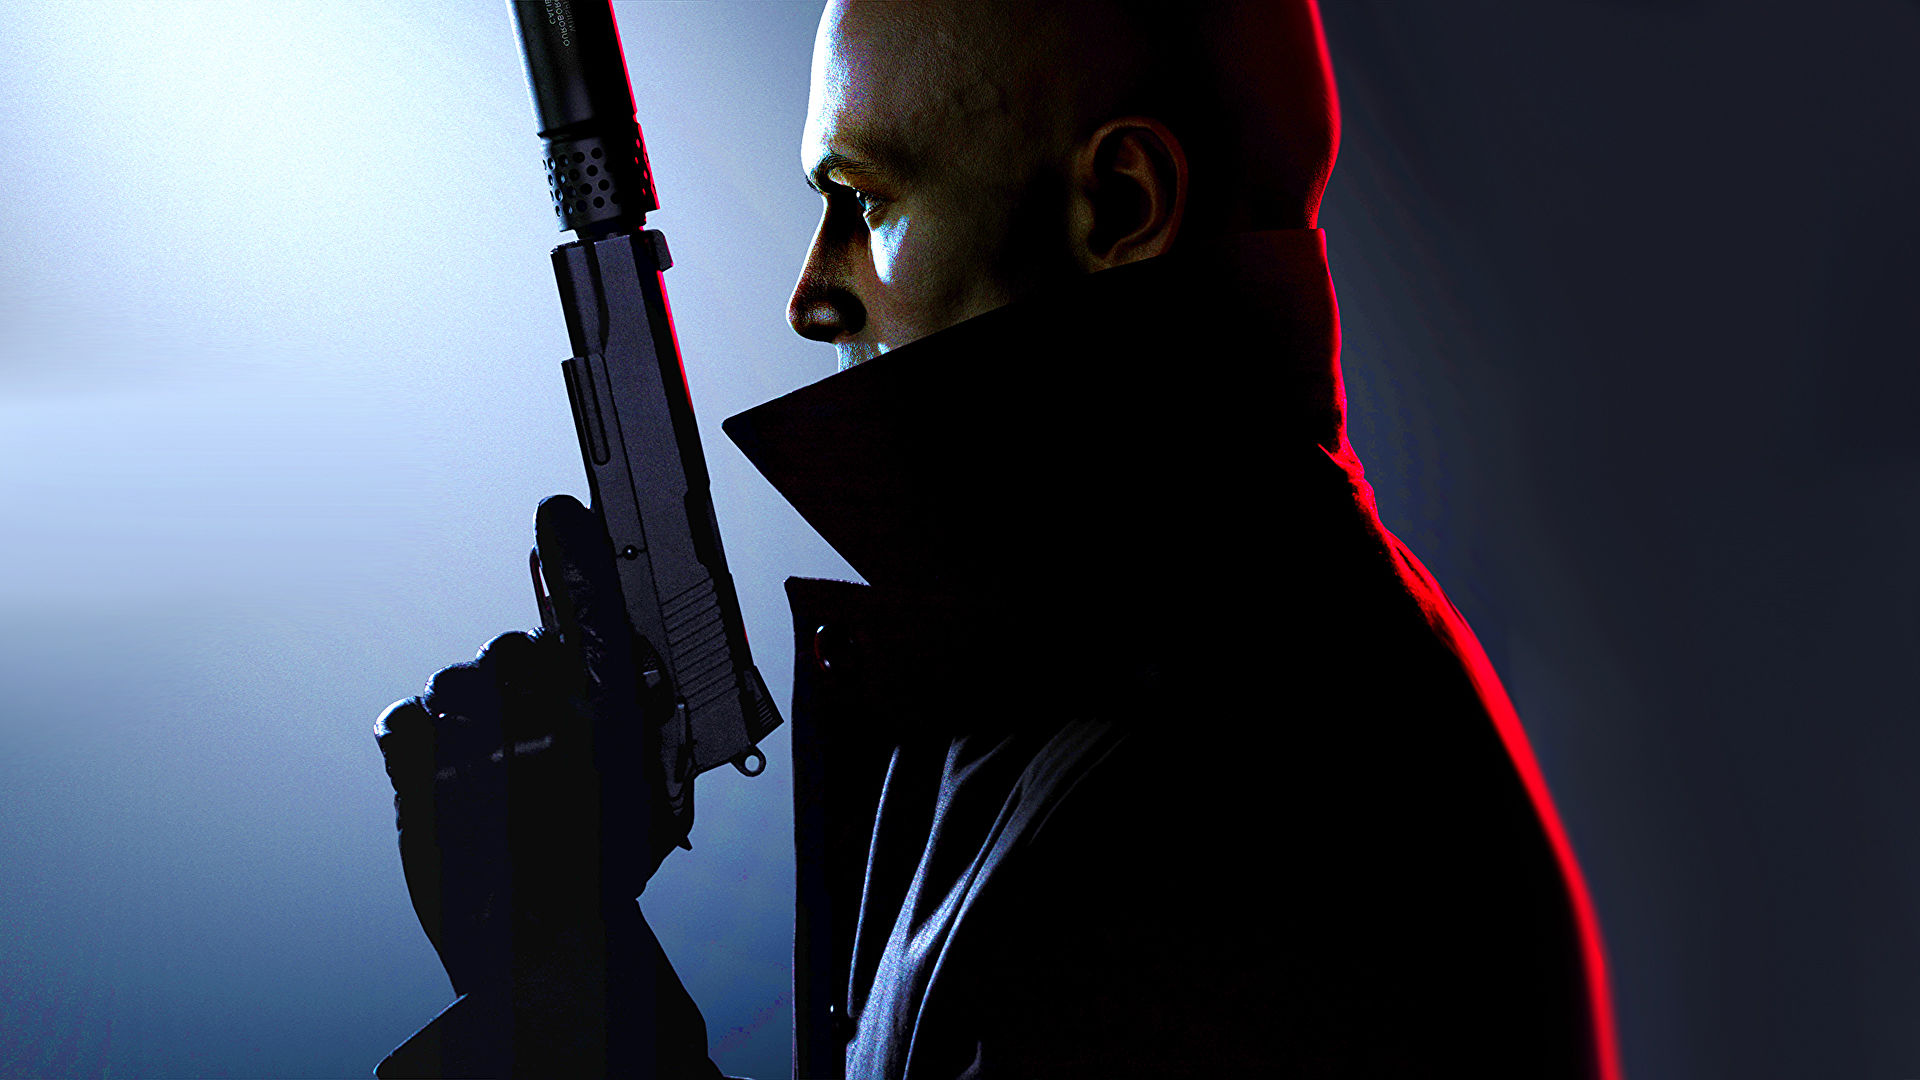 Every level from Hitman 1, 2 and 3 ranked